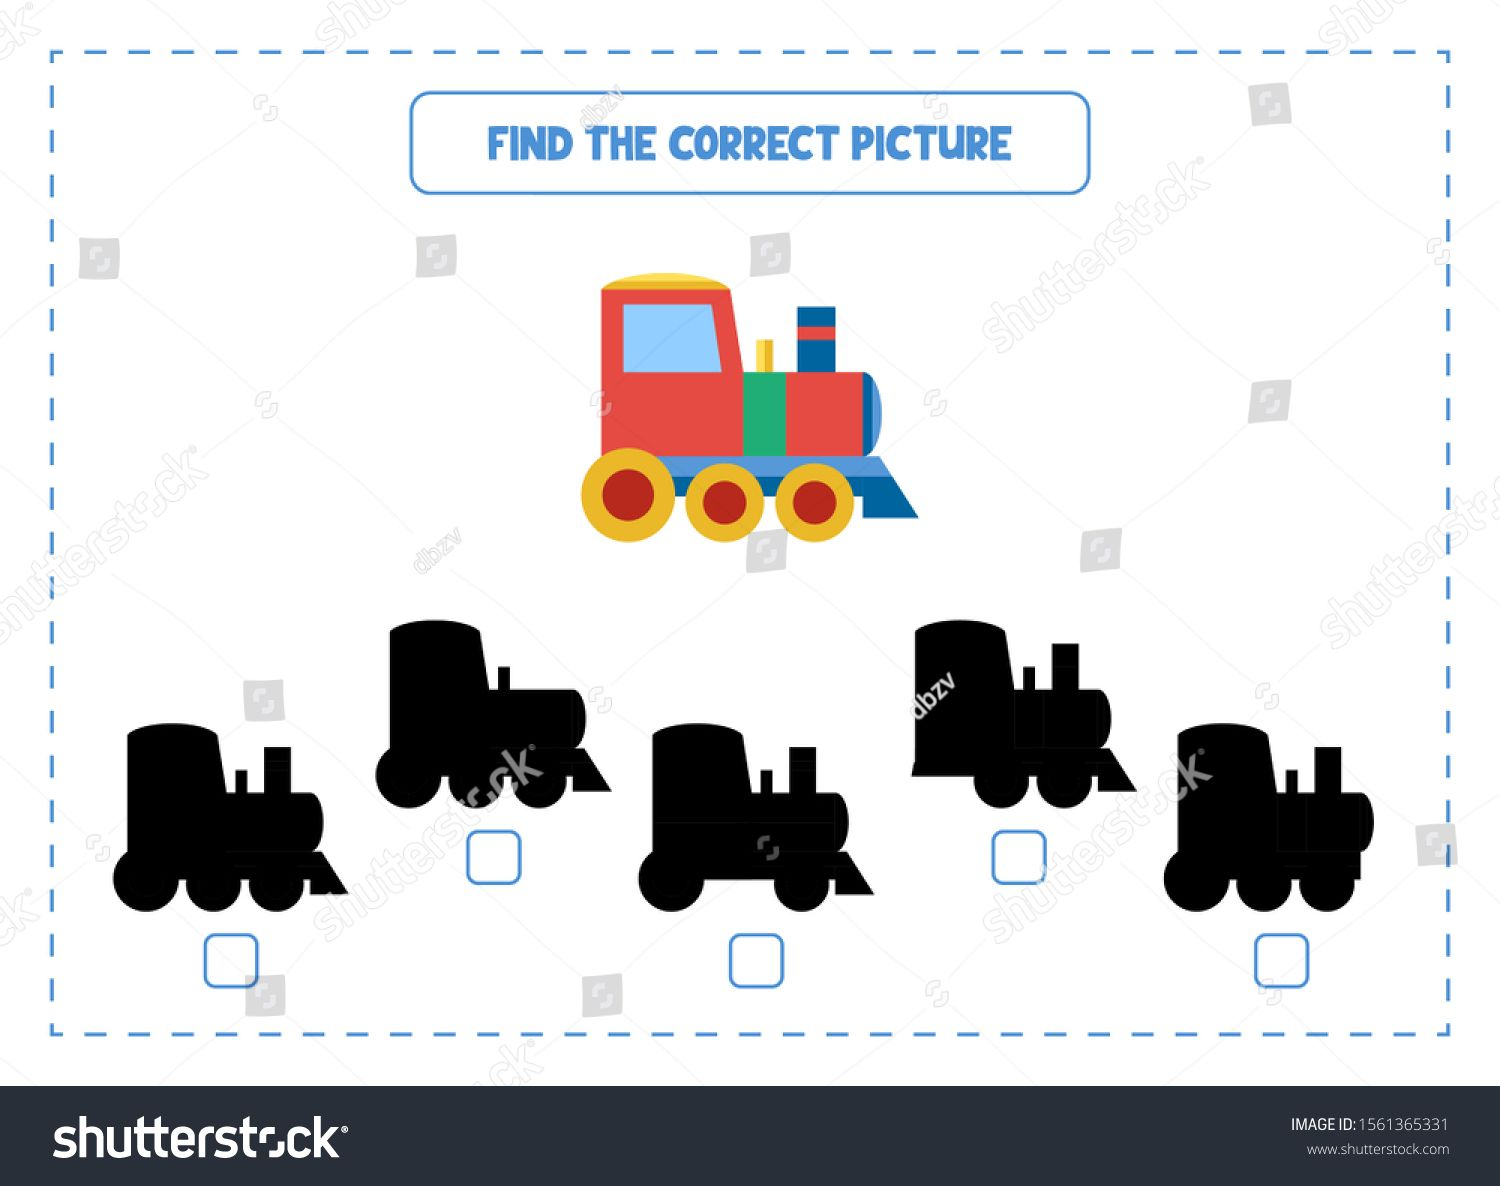 Find The Correct Shadow Game Educational Exercises For